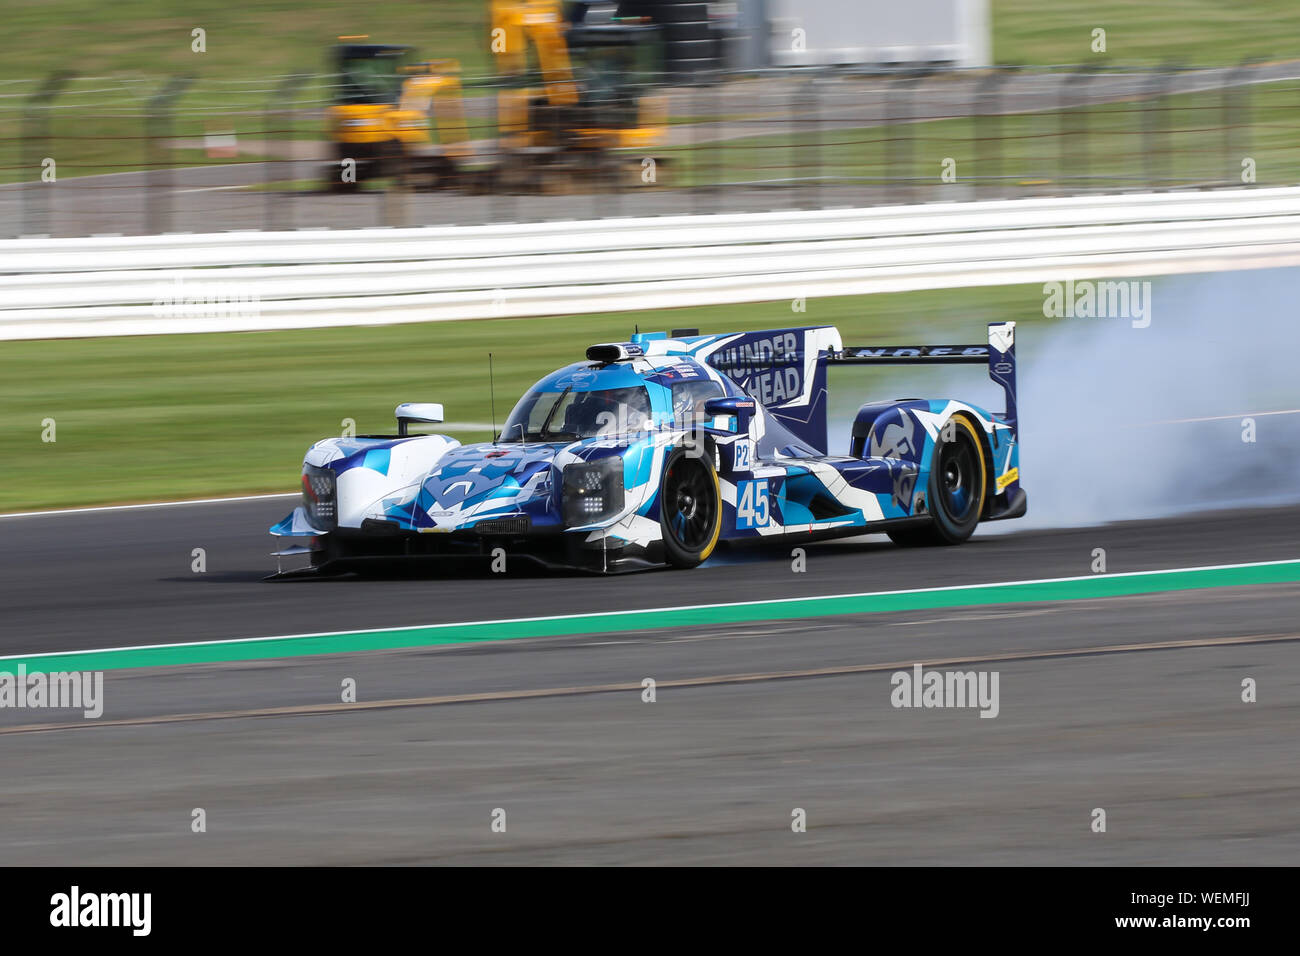 The #45 Carlin Dallara P217-Gibson of Jack Manchester, Harry Tincknell and Ben Barnicoat crashes during practice for the European Le Mans Series at Si Stock Photo